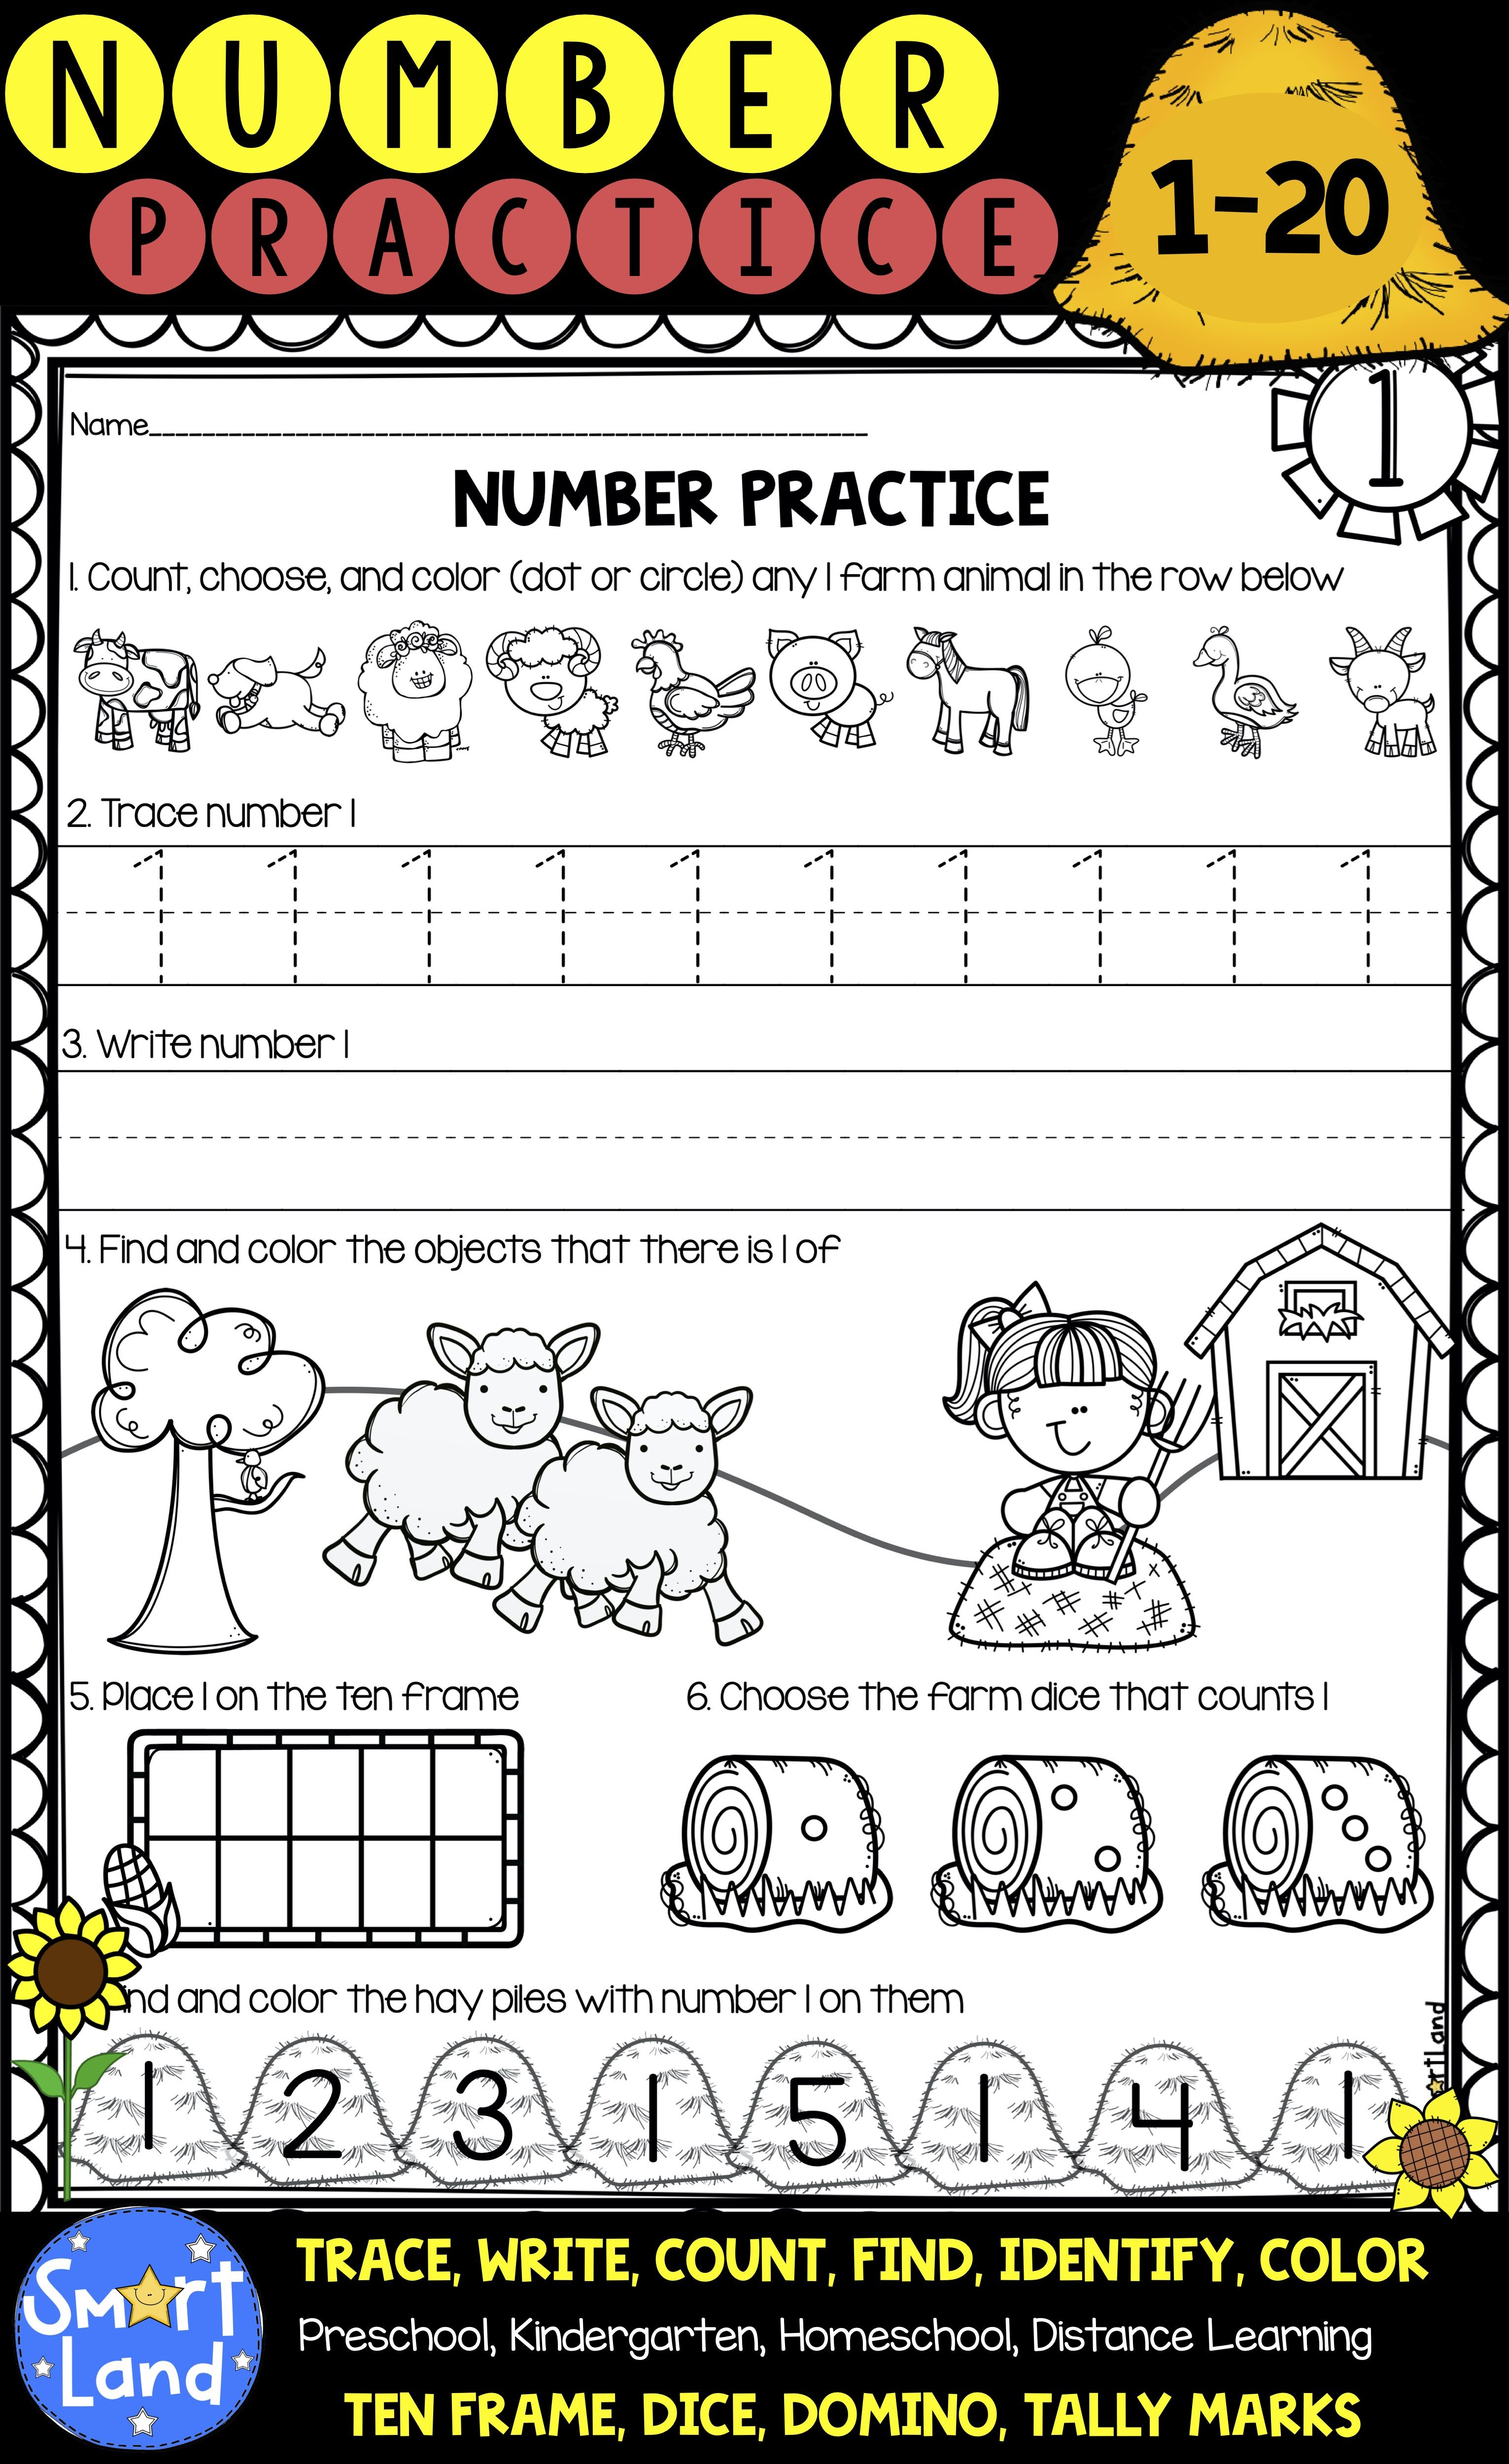 Number Practice 1 20 Handwriting And Counting